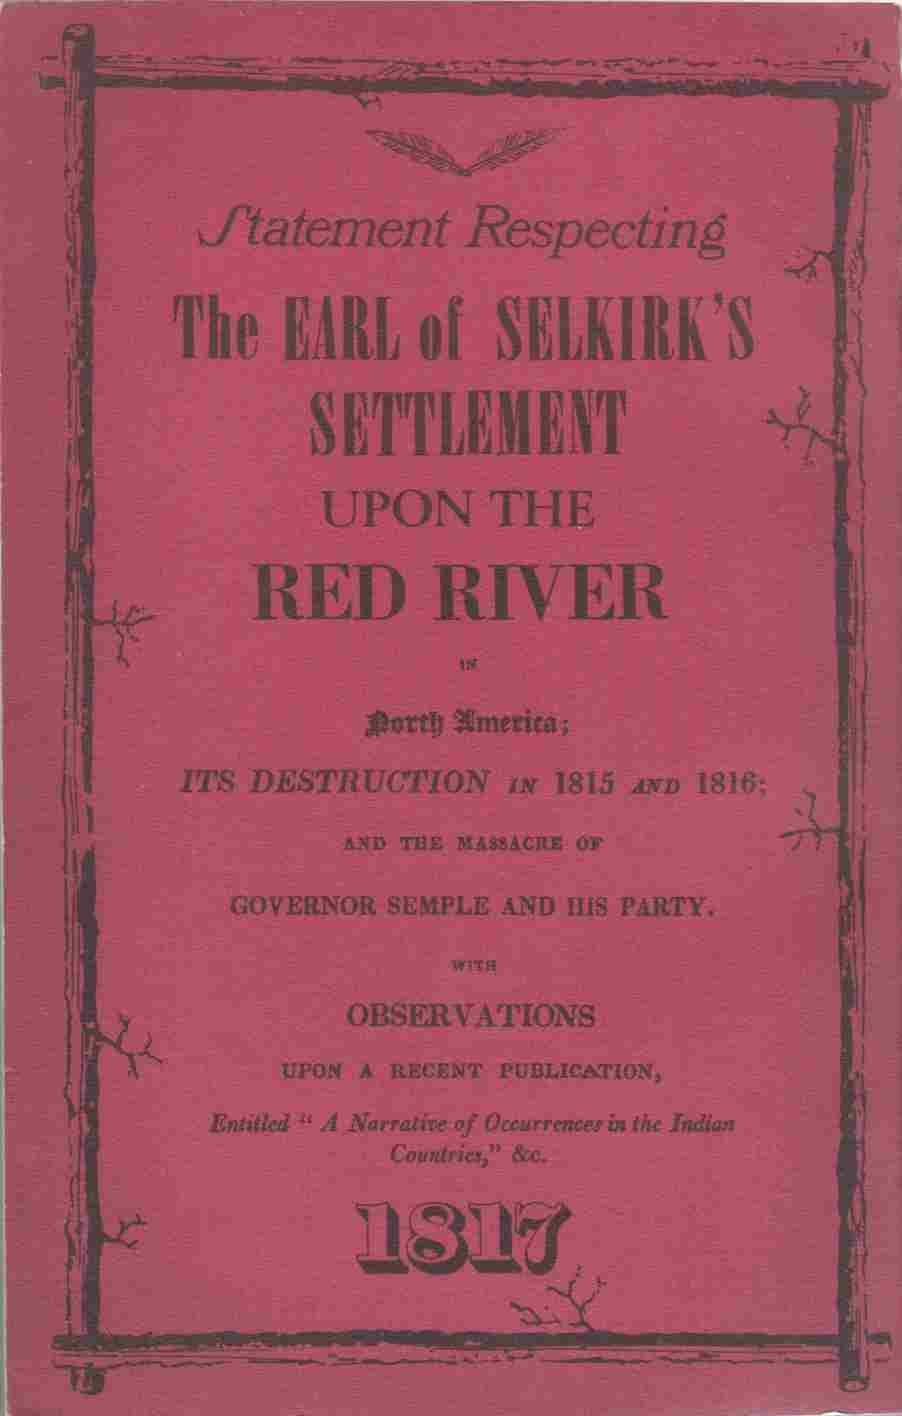 Image for Statement Respecting the Earl of Selkirk's Settlement Upon the Red River in North America  Its Destruction in 1815 and 1816; and the Massacre of Governor Semple and His Party